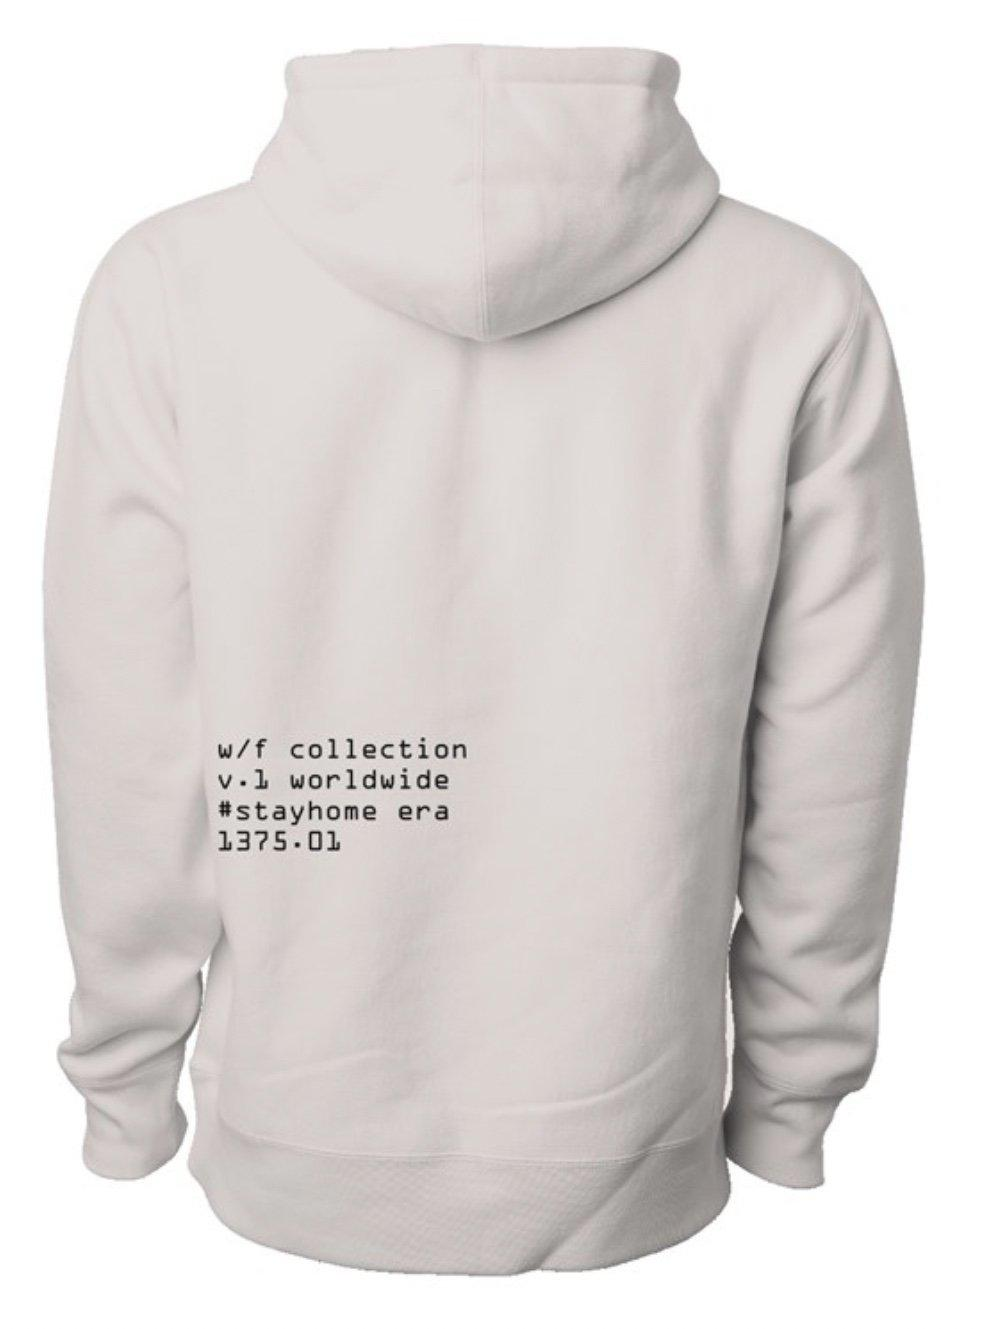 White Embroidered Fleece Hoodie with black print on lower left back side